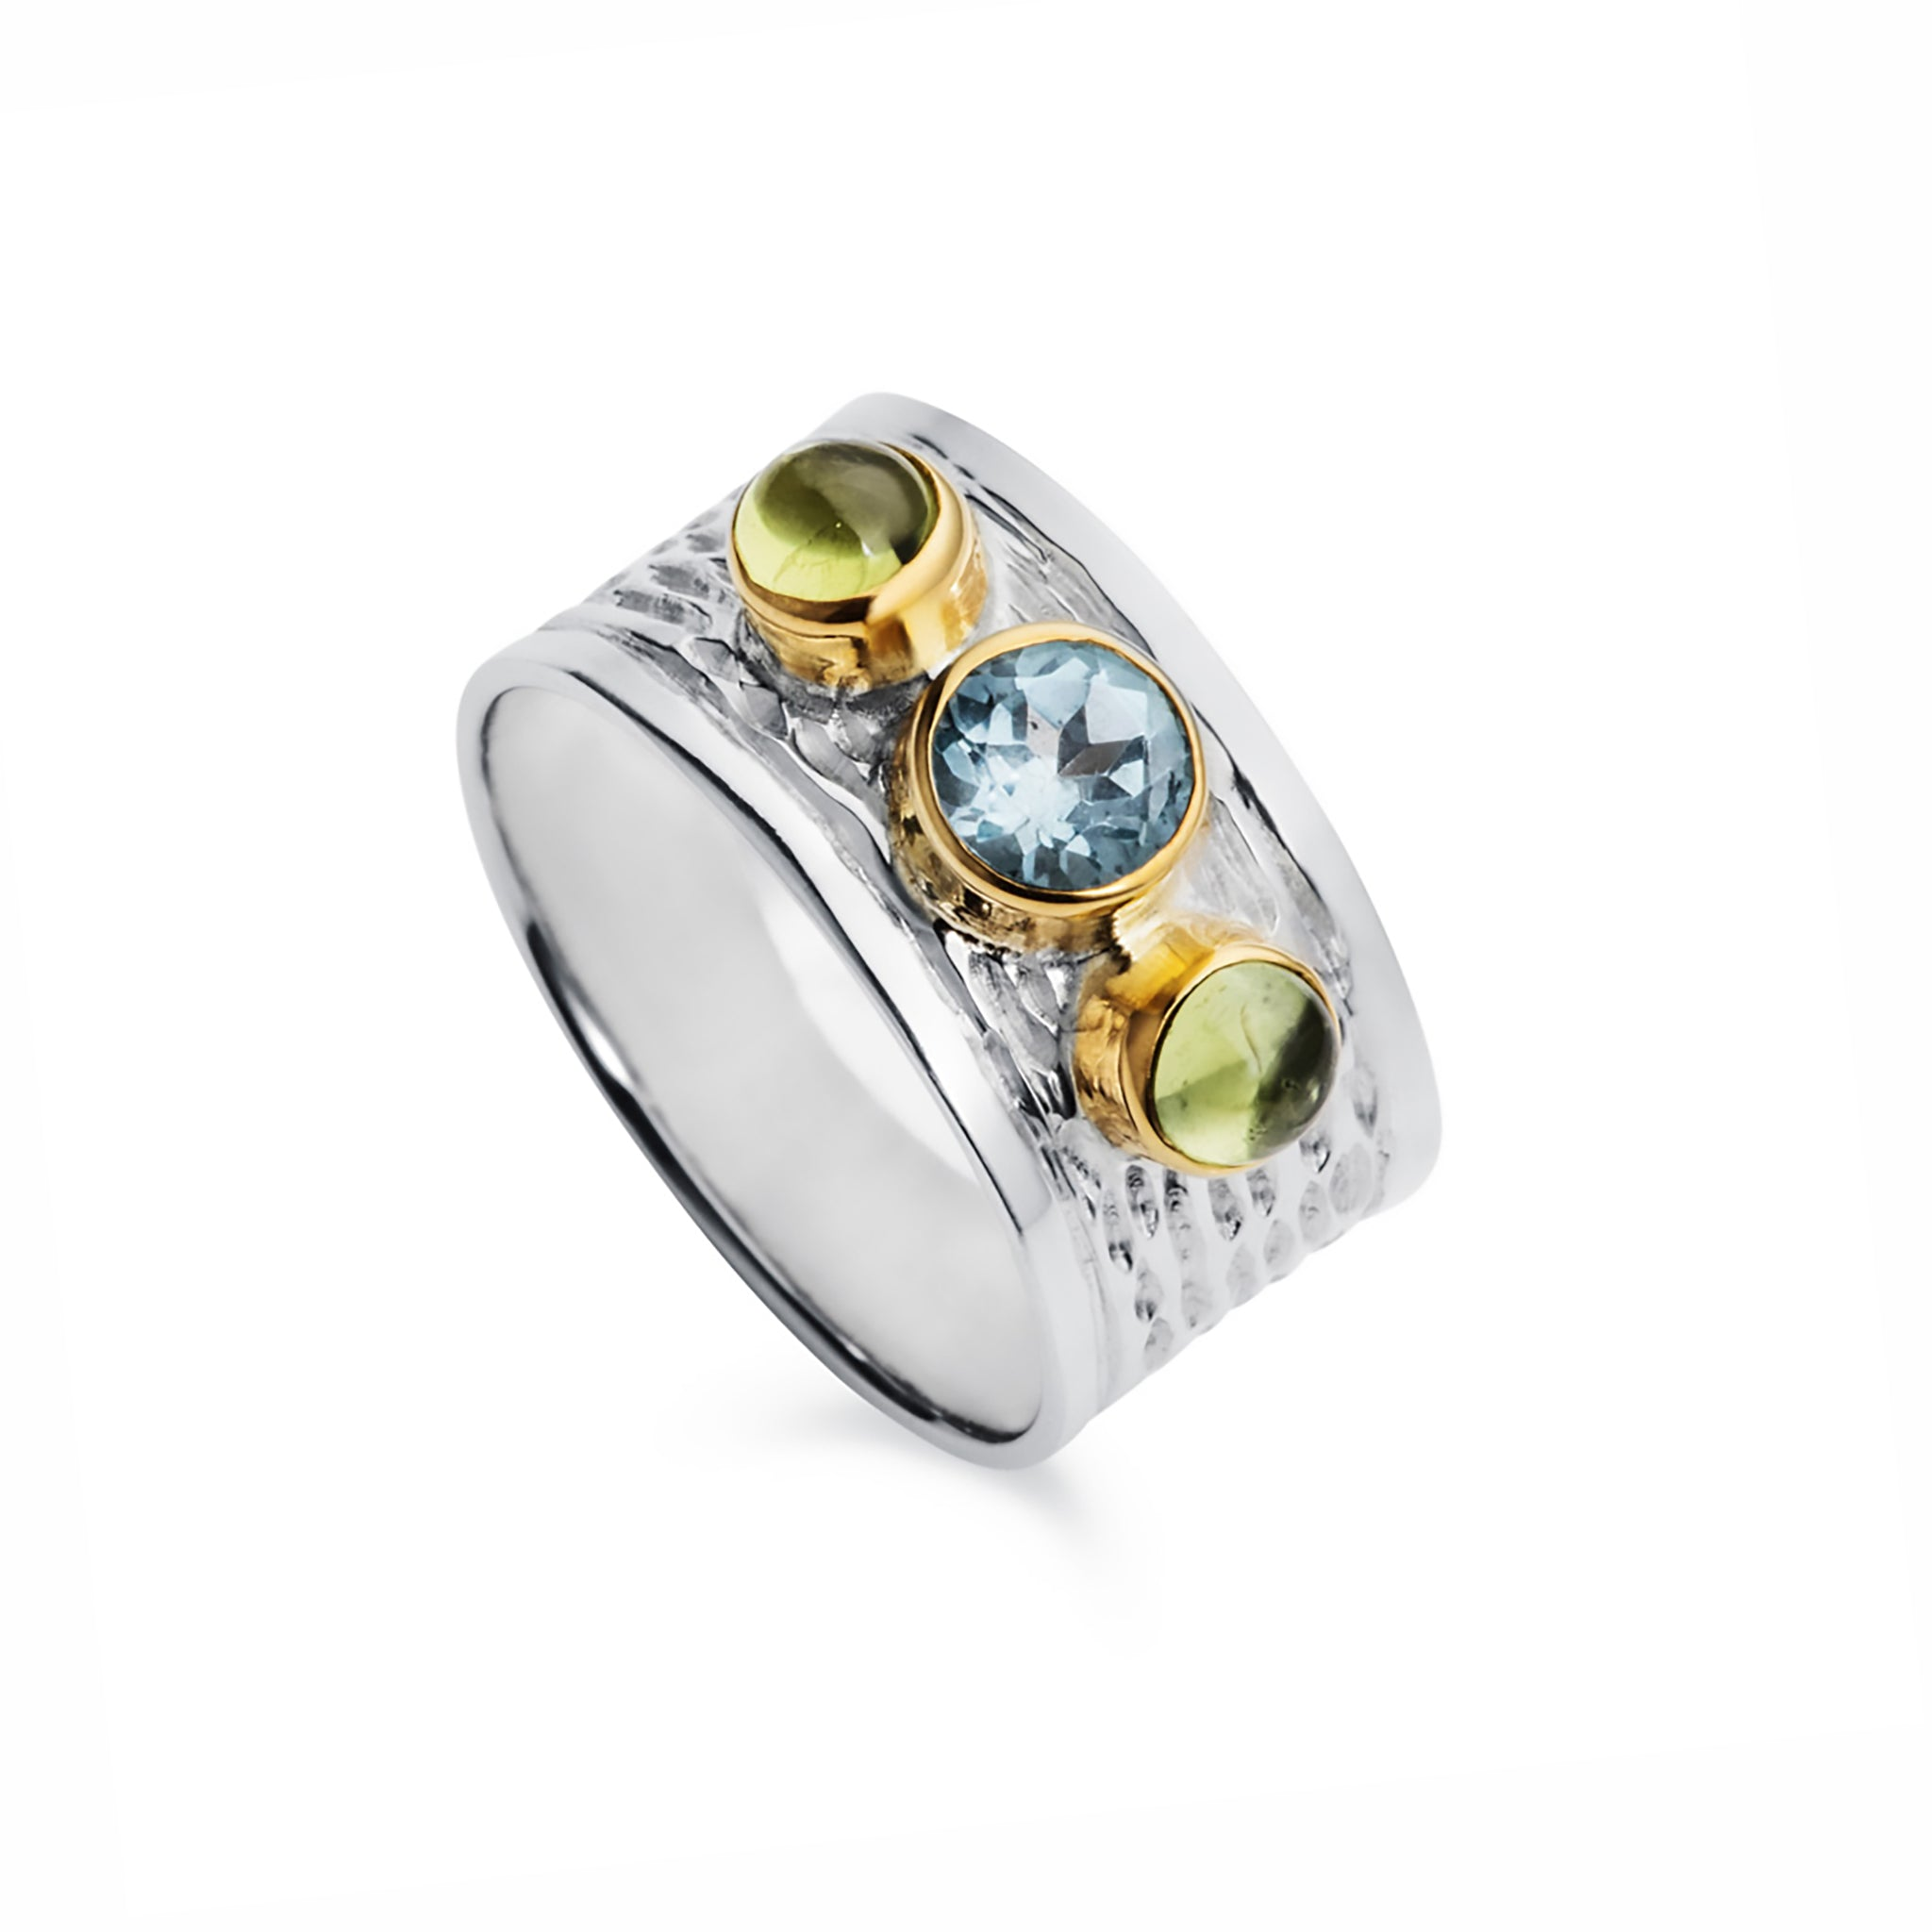 Silver Milan Ring With Blue Topaz and Peridot Gemstones